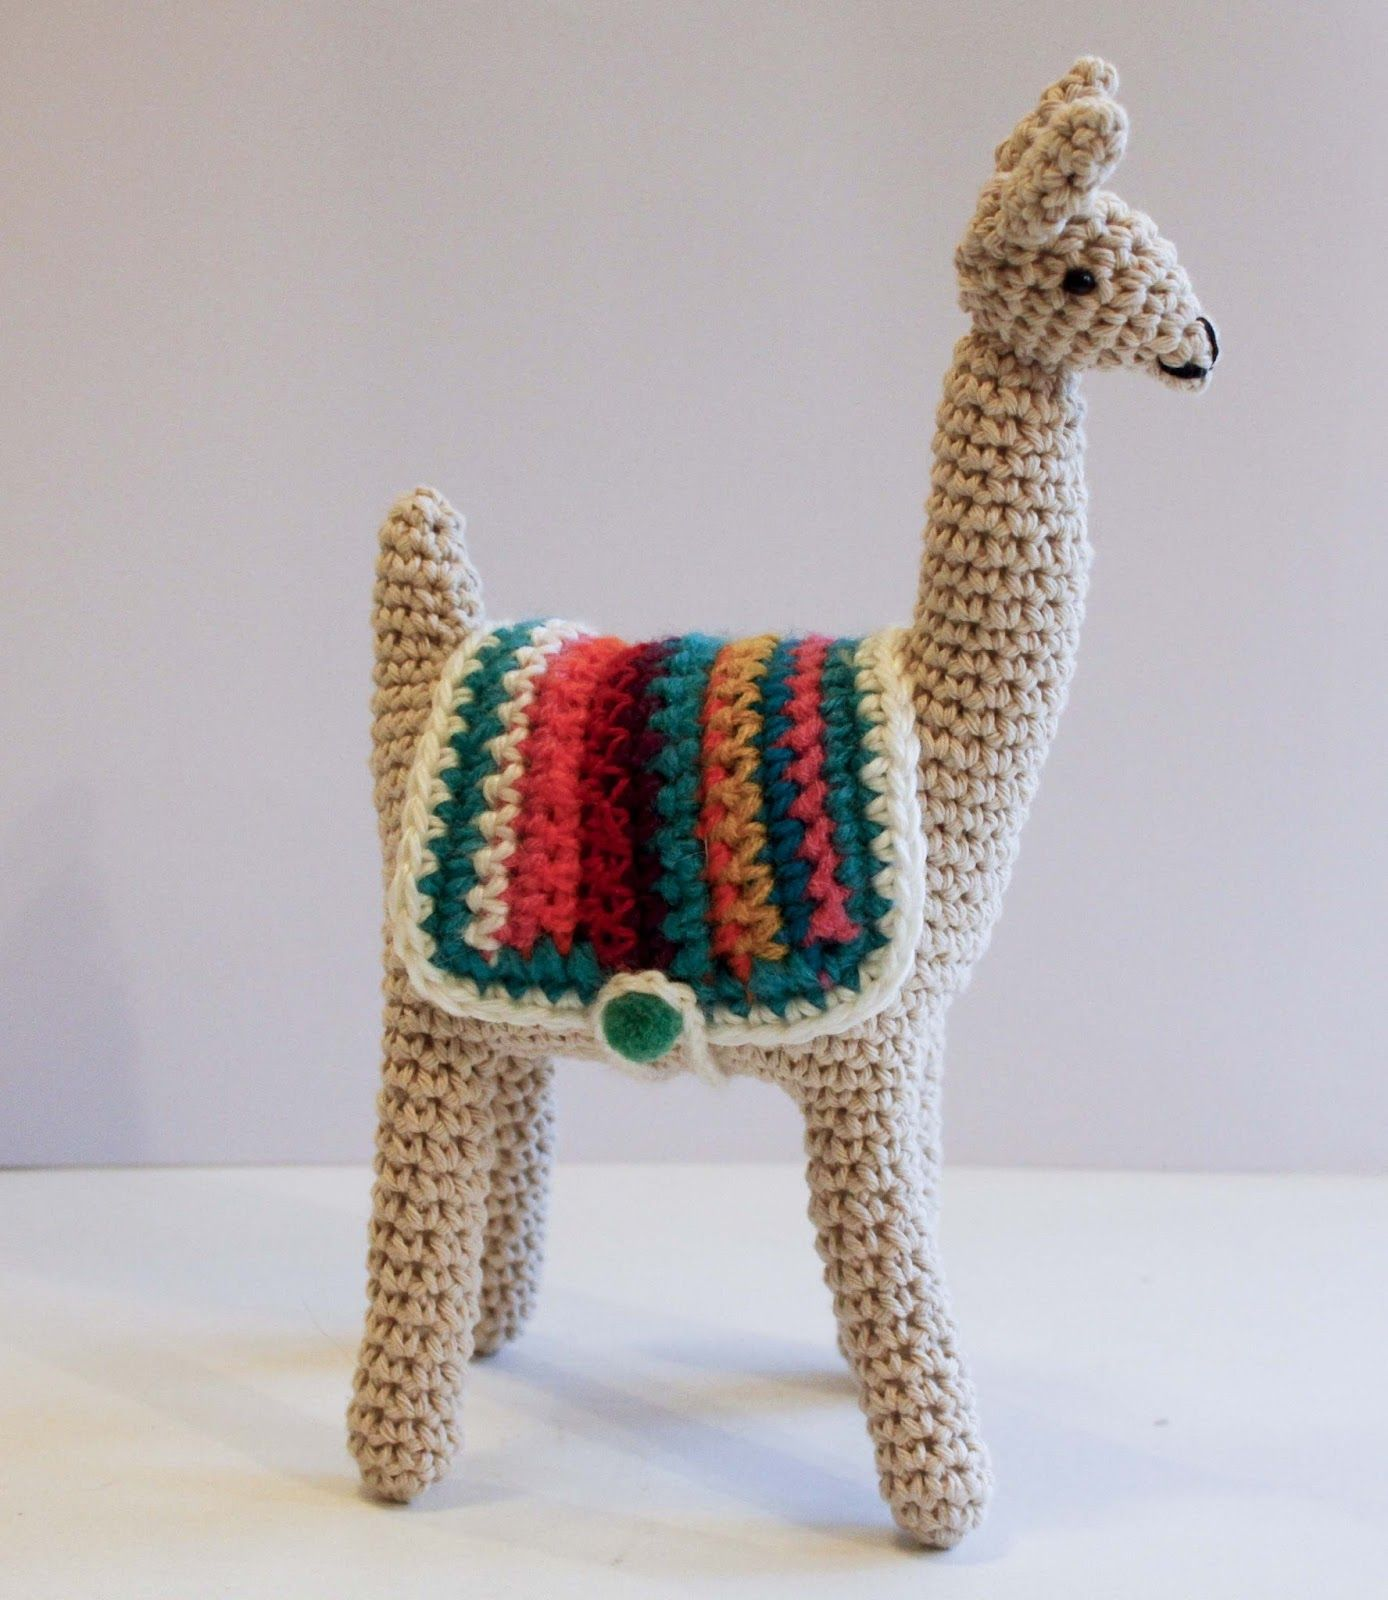 Pin by Rosemary Byron on CROCHET & KNITTING | Pinterest | Crochet ...